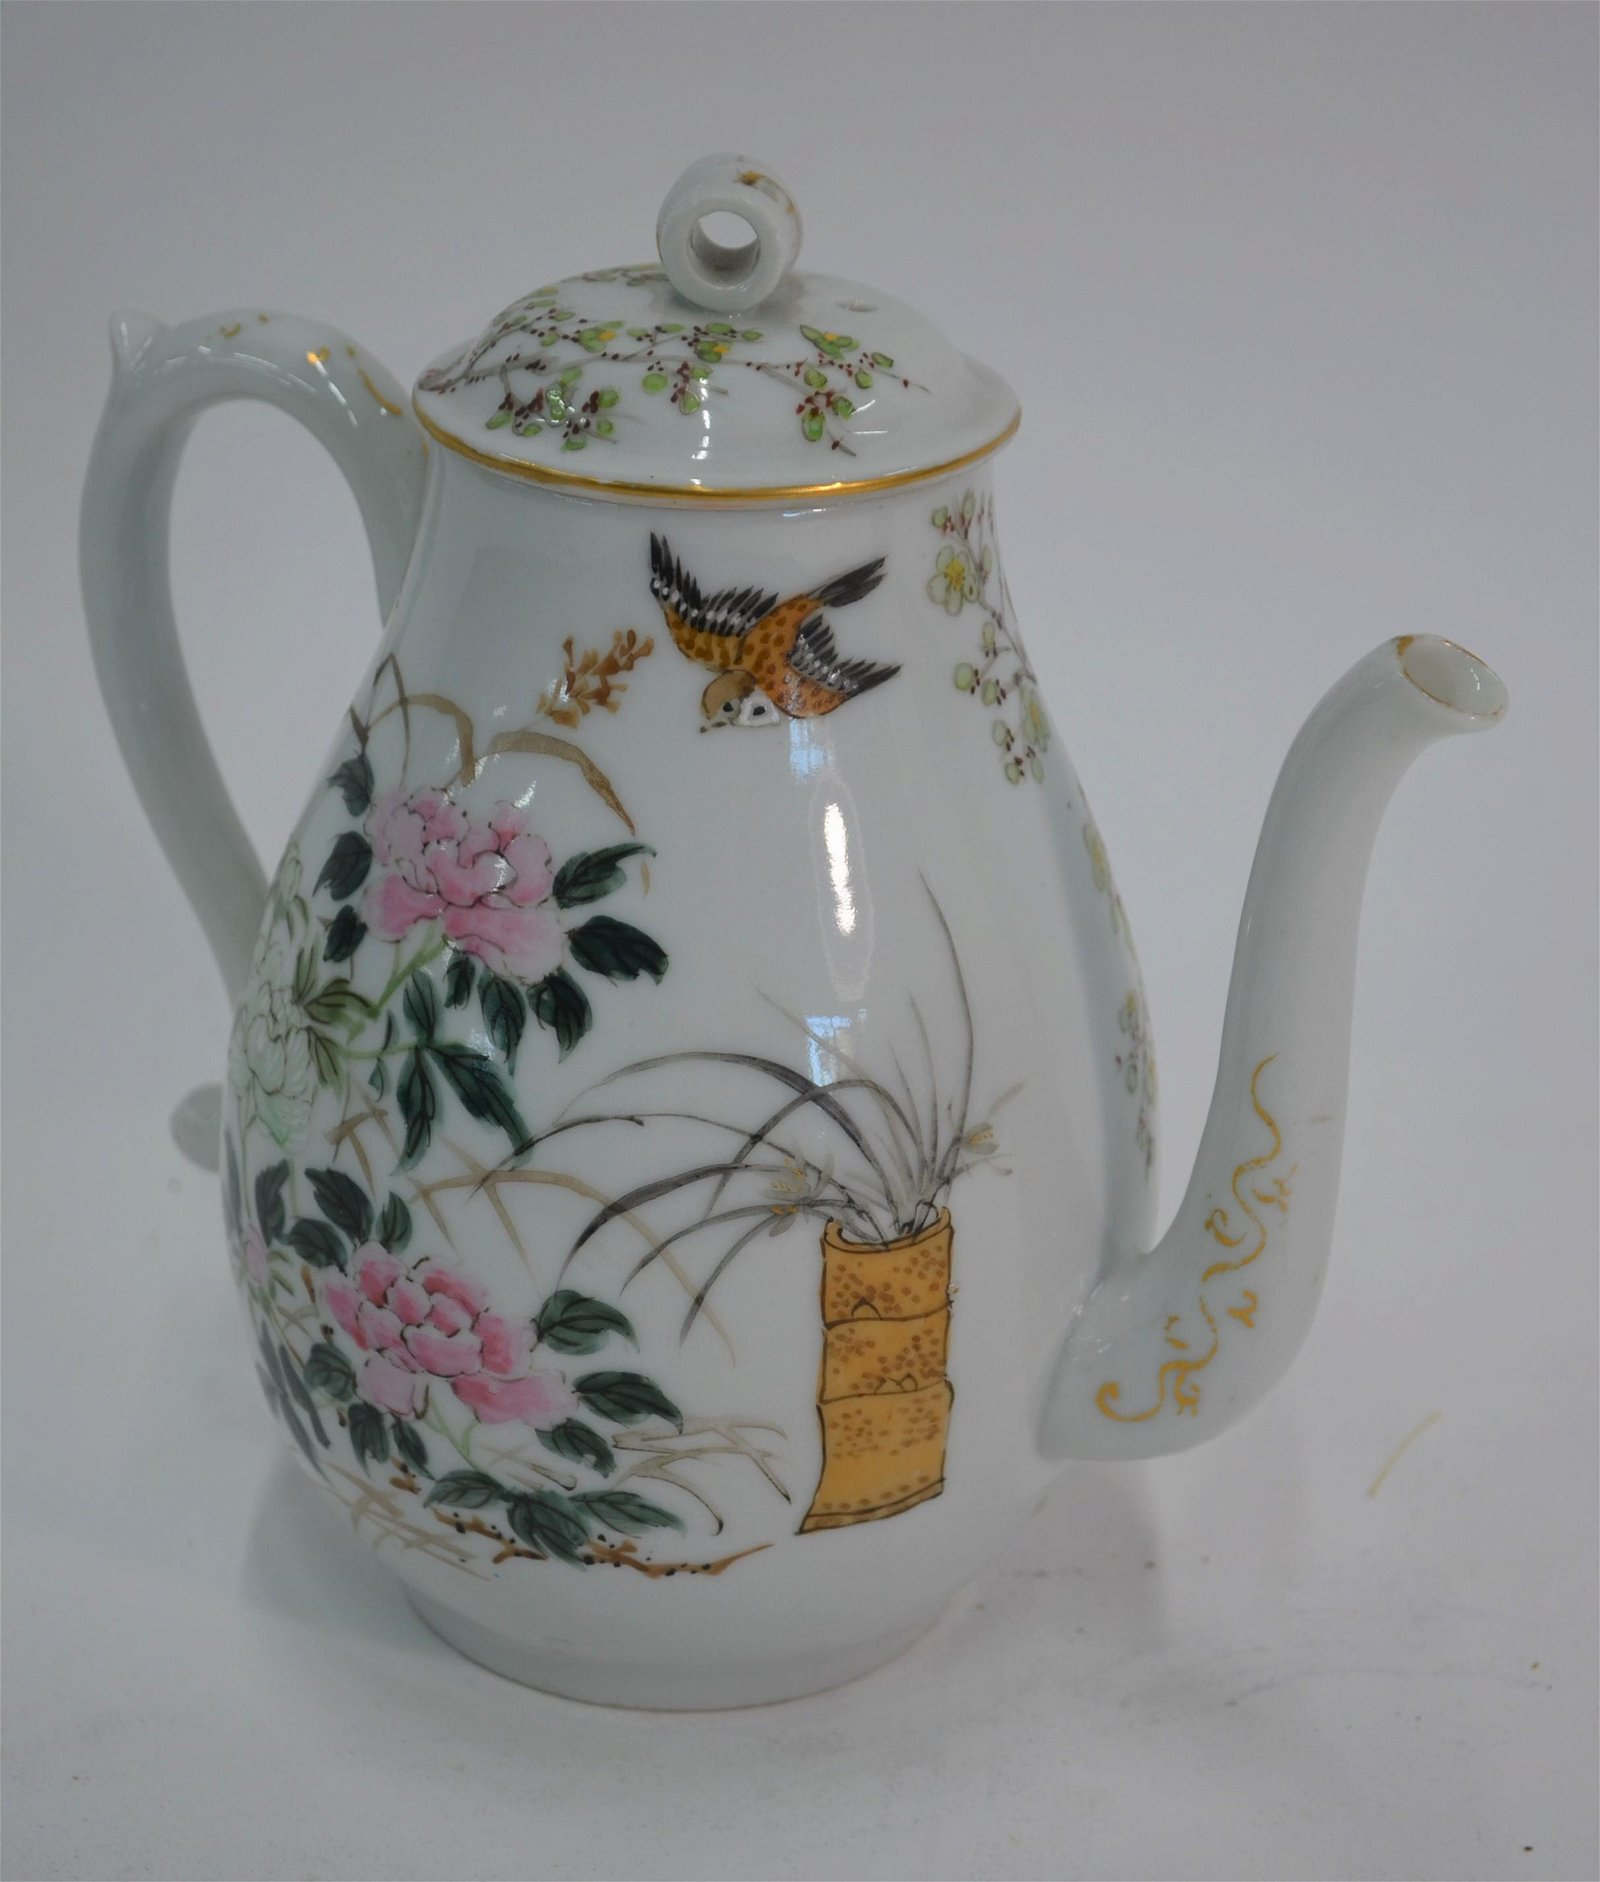 An early 20th century Japanese porcelain coffee pot and